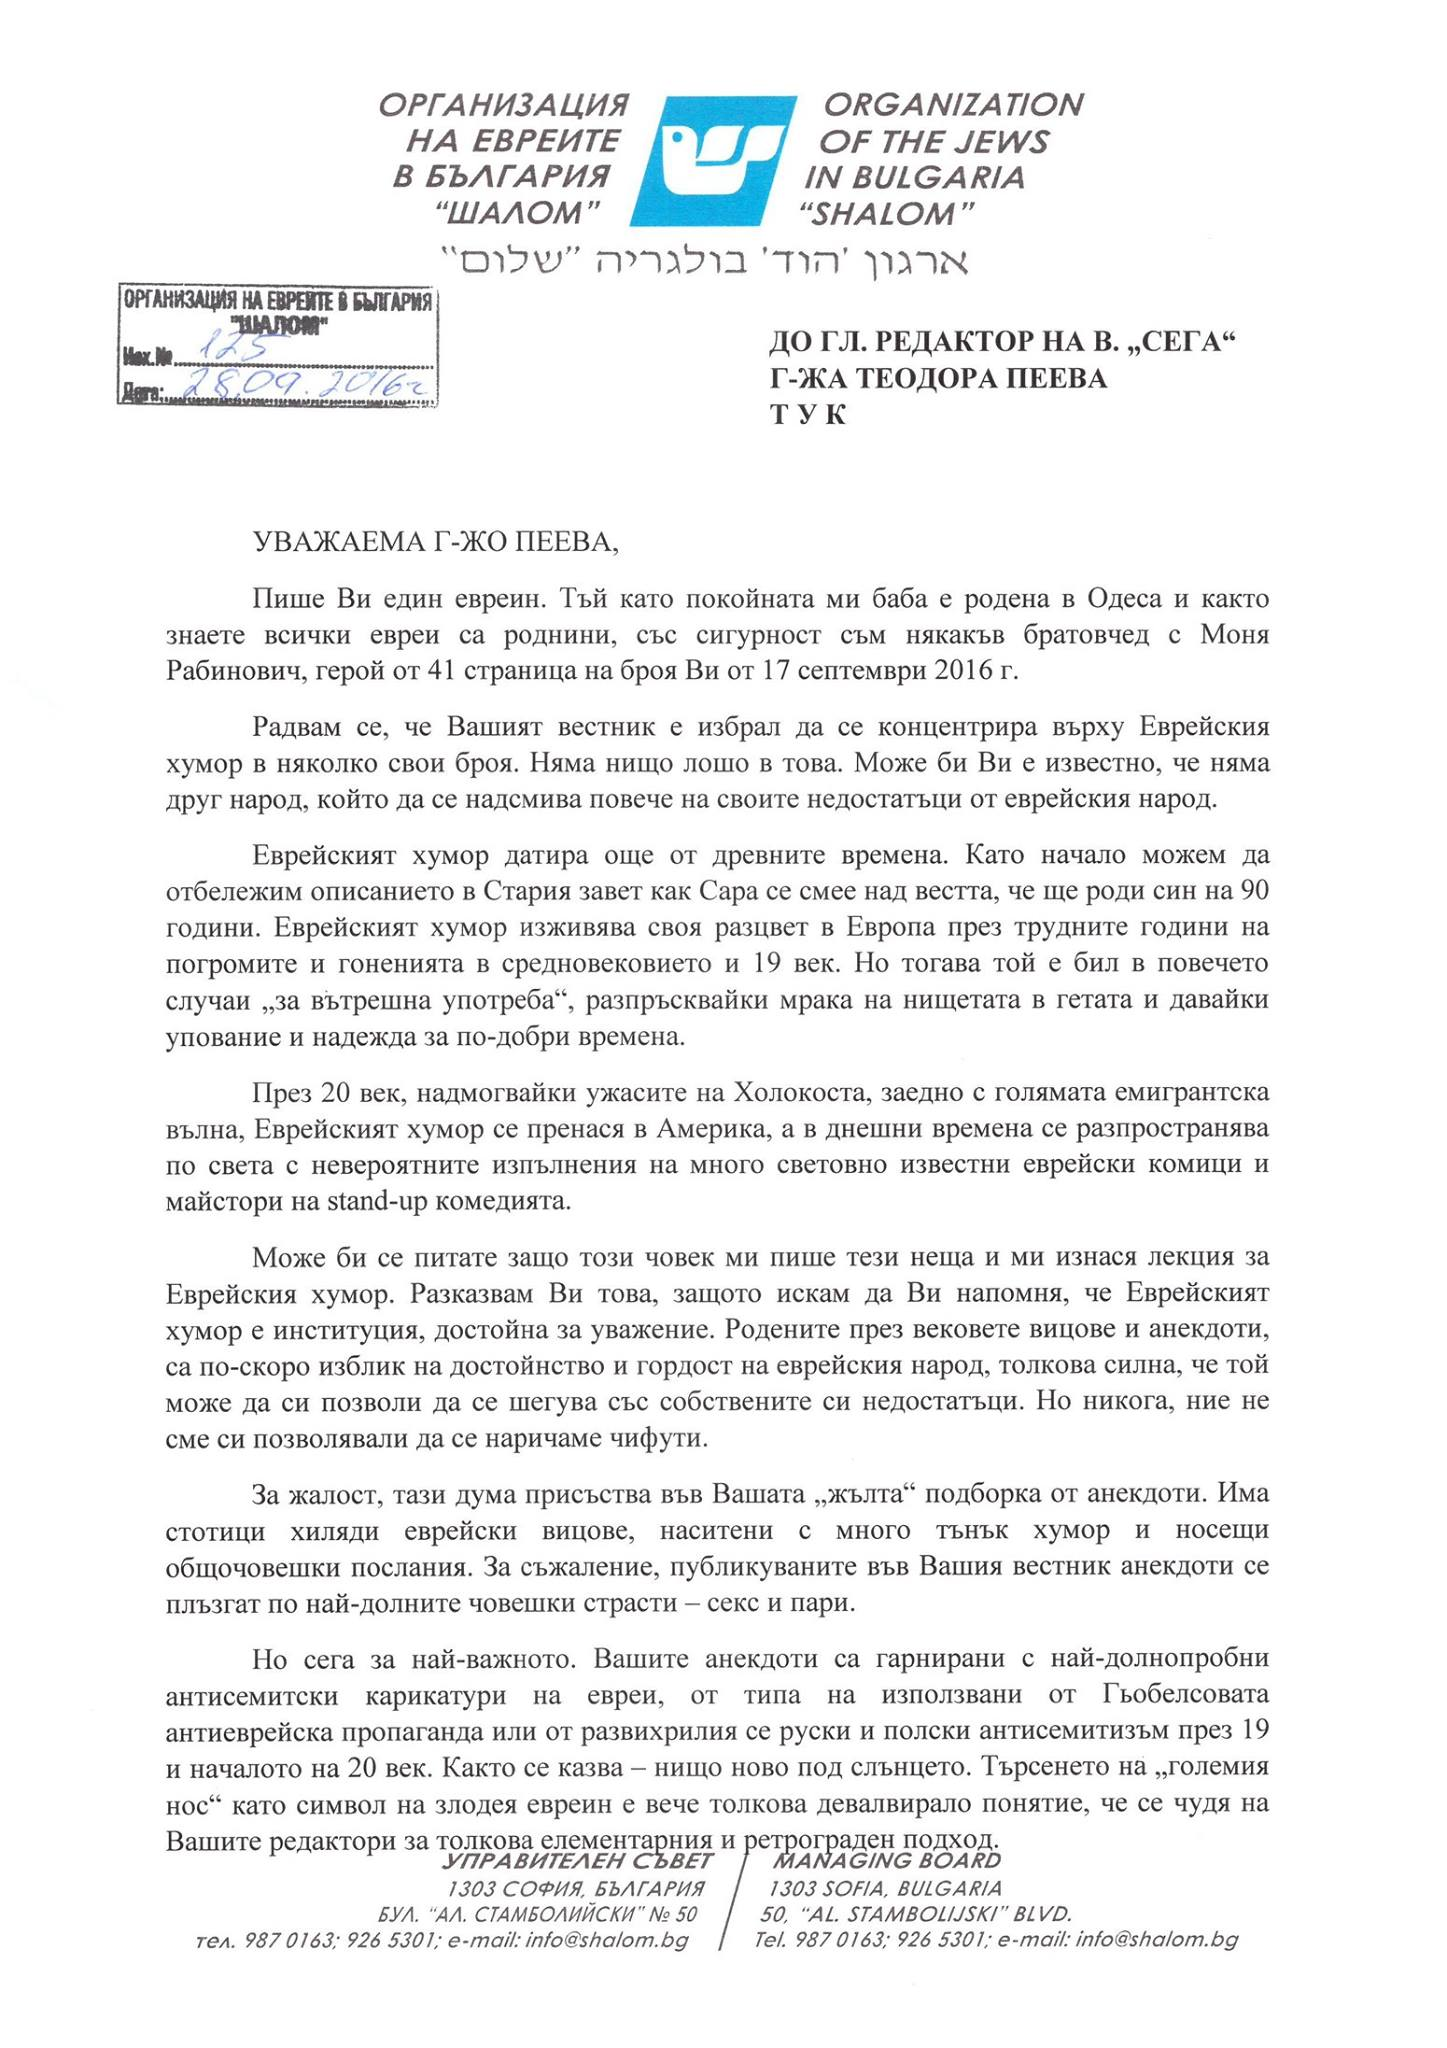 letter to sega daily on the occasion of their article Шалом